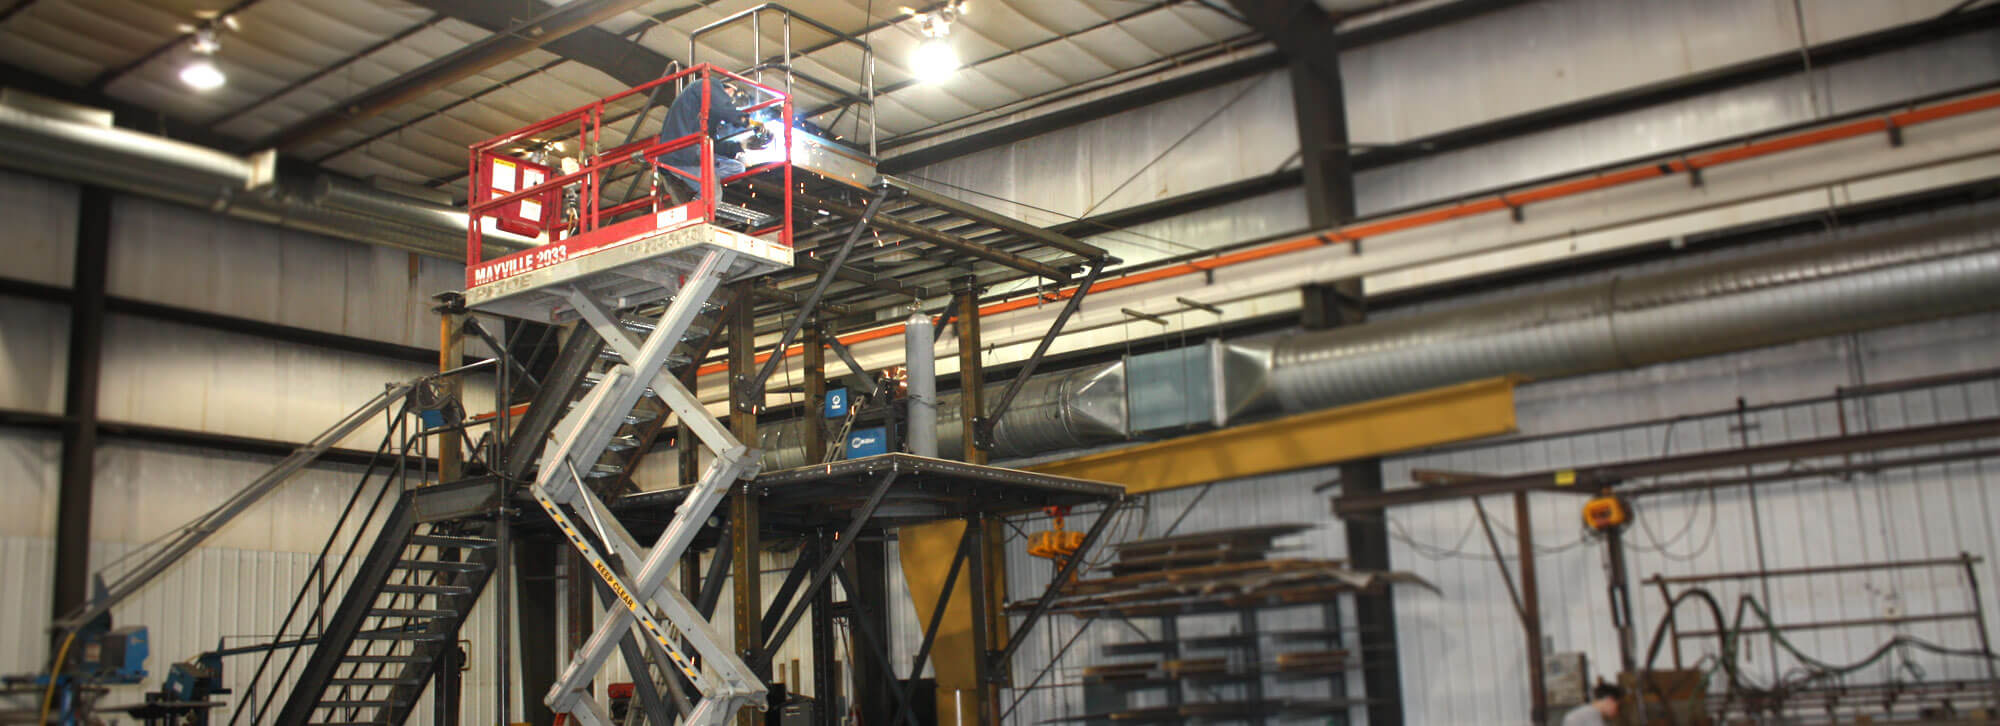 Fabricators at Millwood Metalworks using a scissor lift to weld on a large stair structure